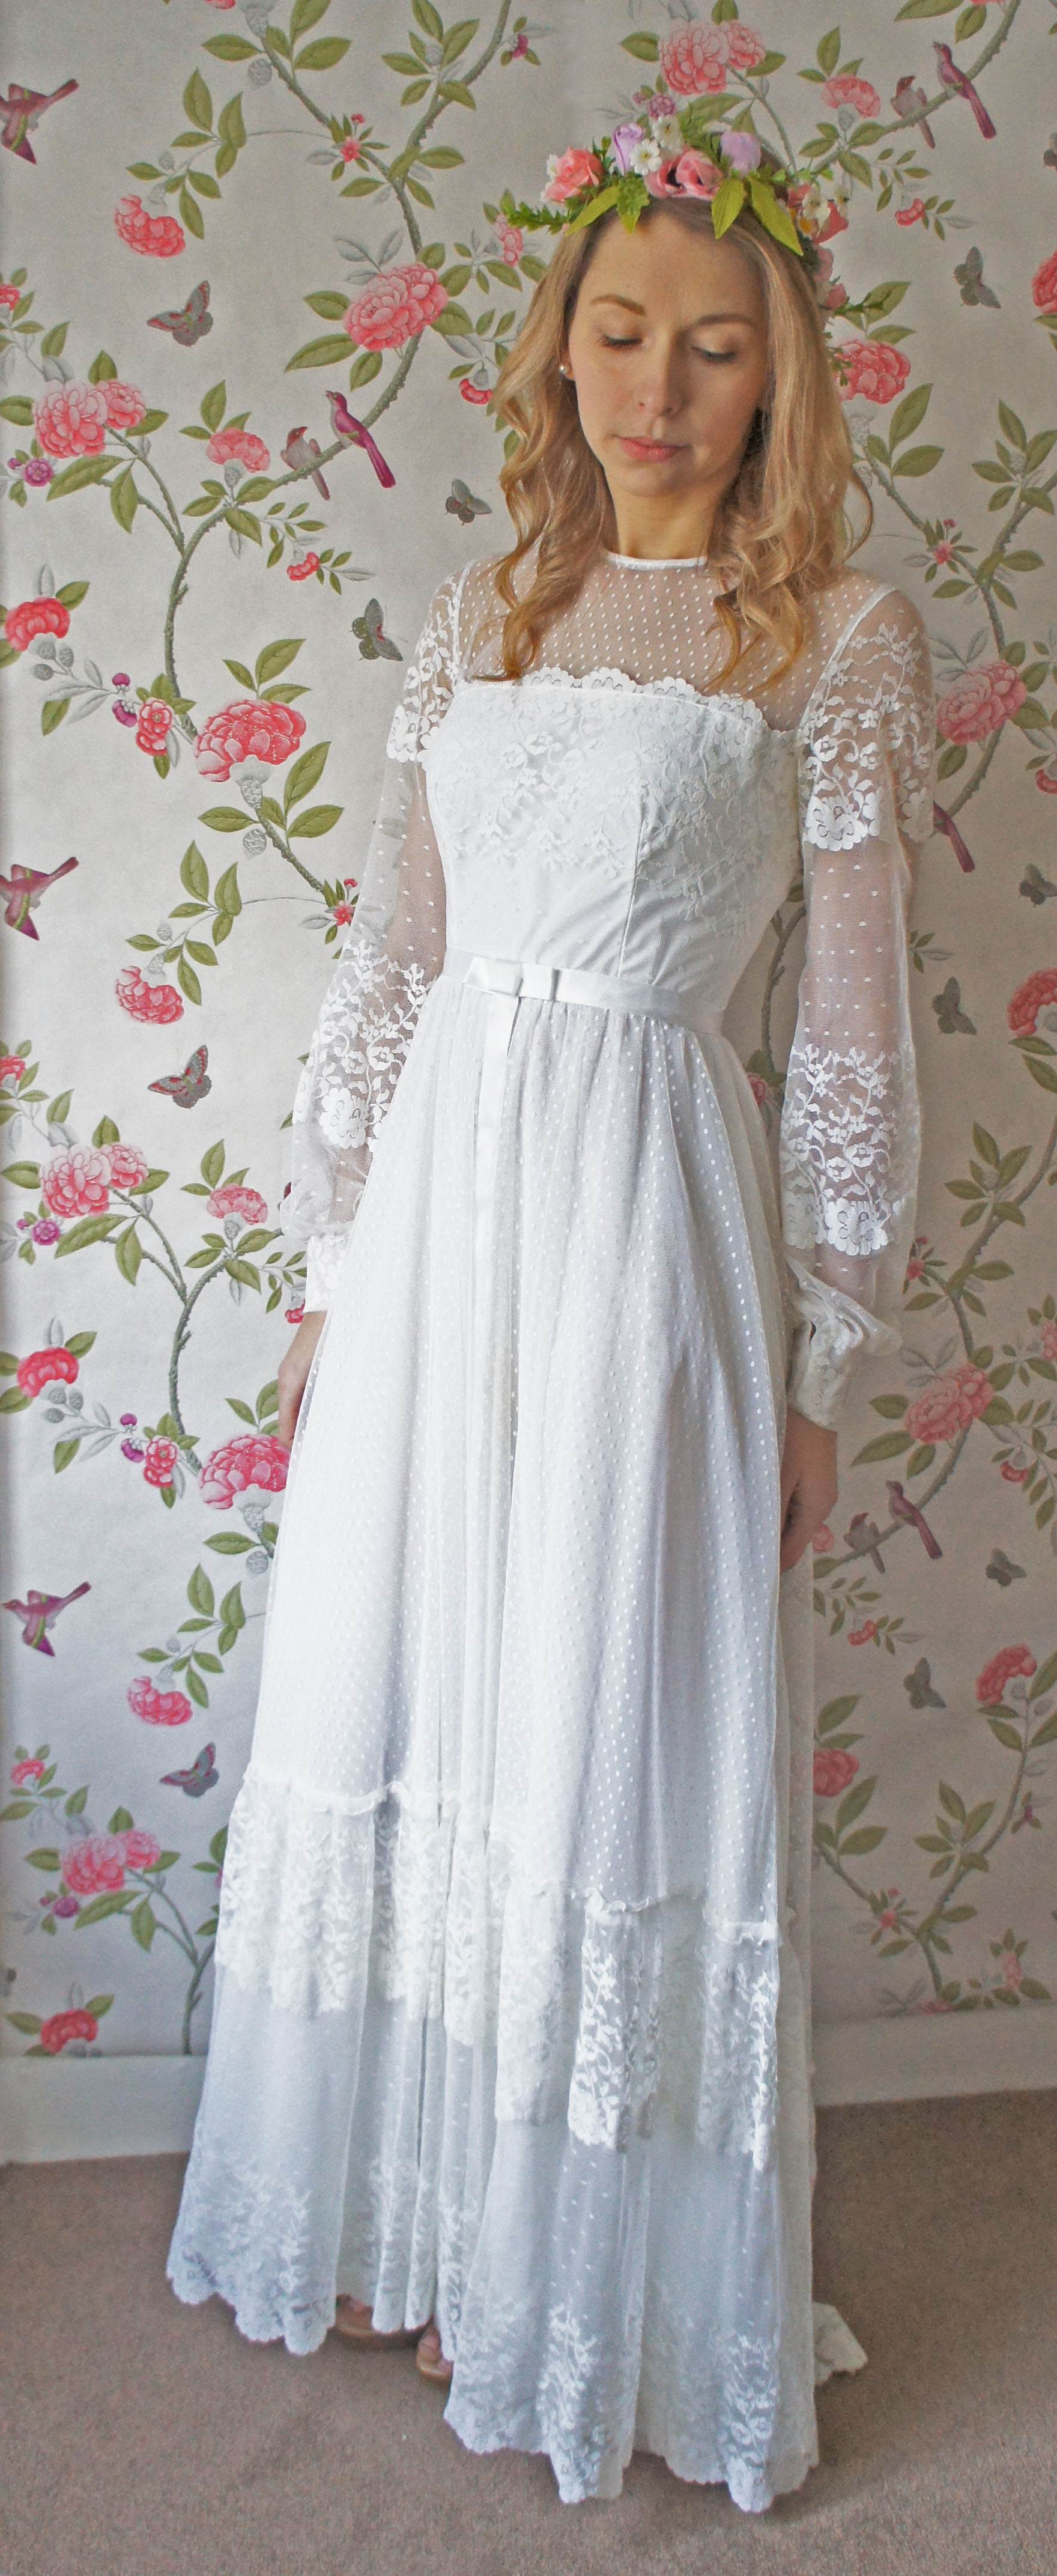 1970s vintage wedding dress from Sincerely Bea Bridal as featured on The National Vintage Wedding Fair blog